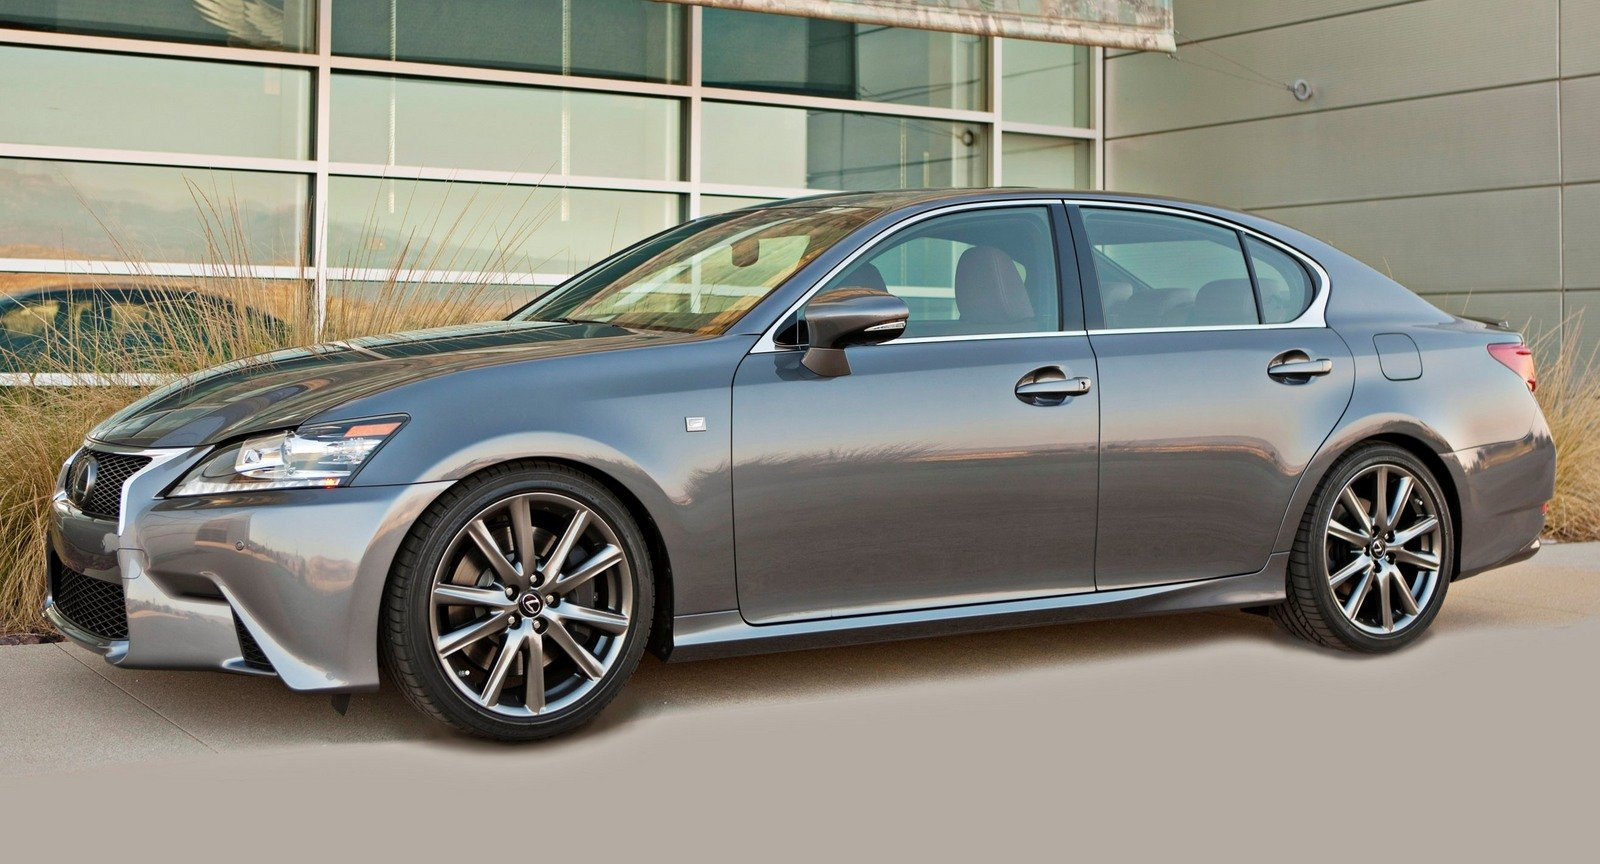 2014 lexus gs 350 picture 525780 car review top speed. Black Bedroom Furniture Sets. Home Design Ideas